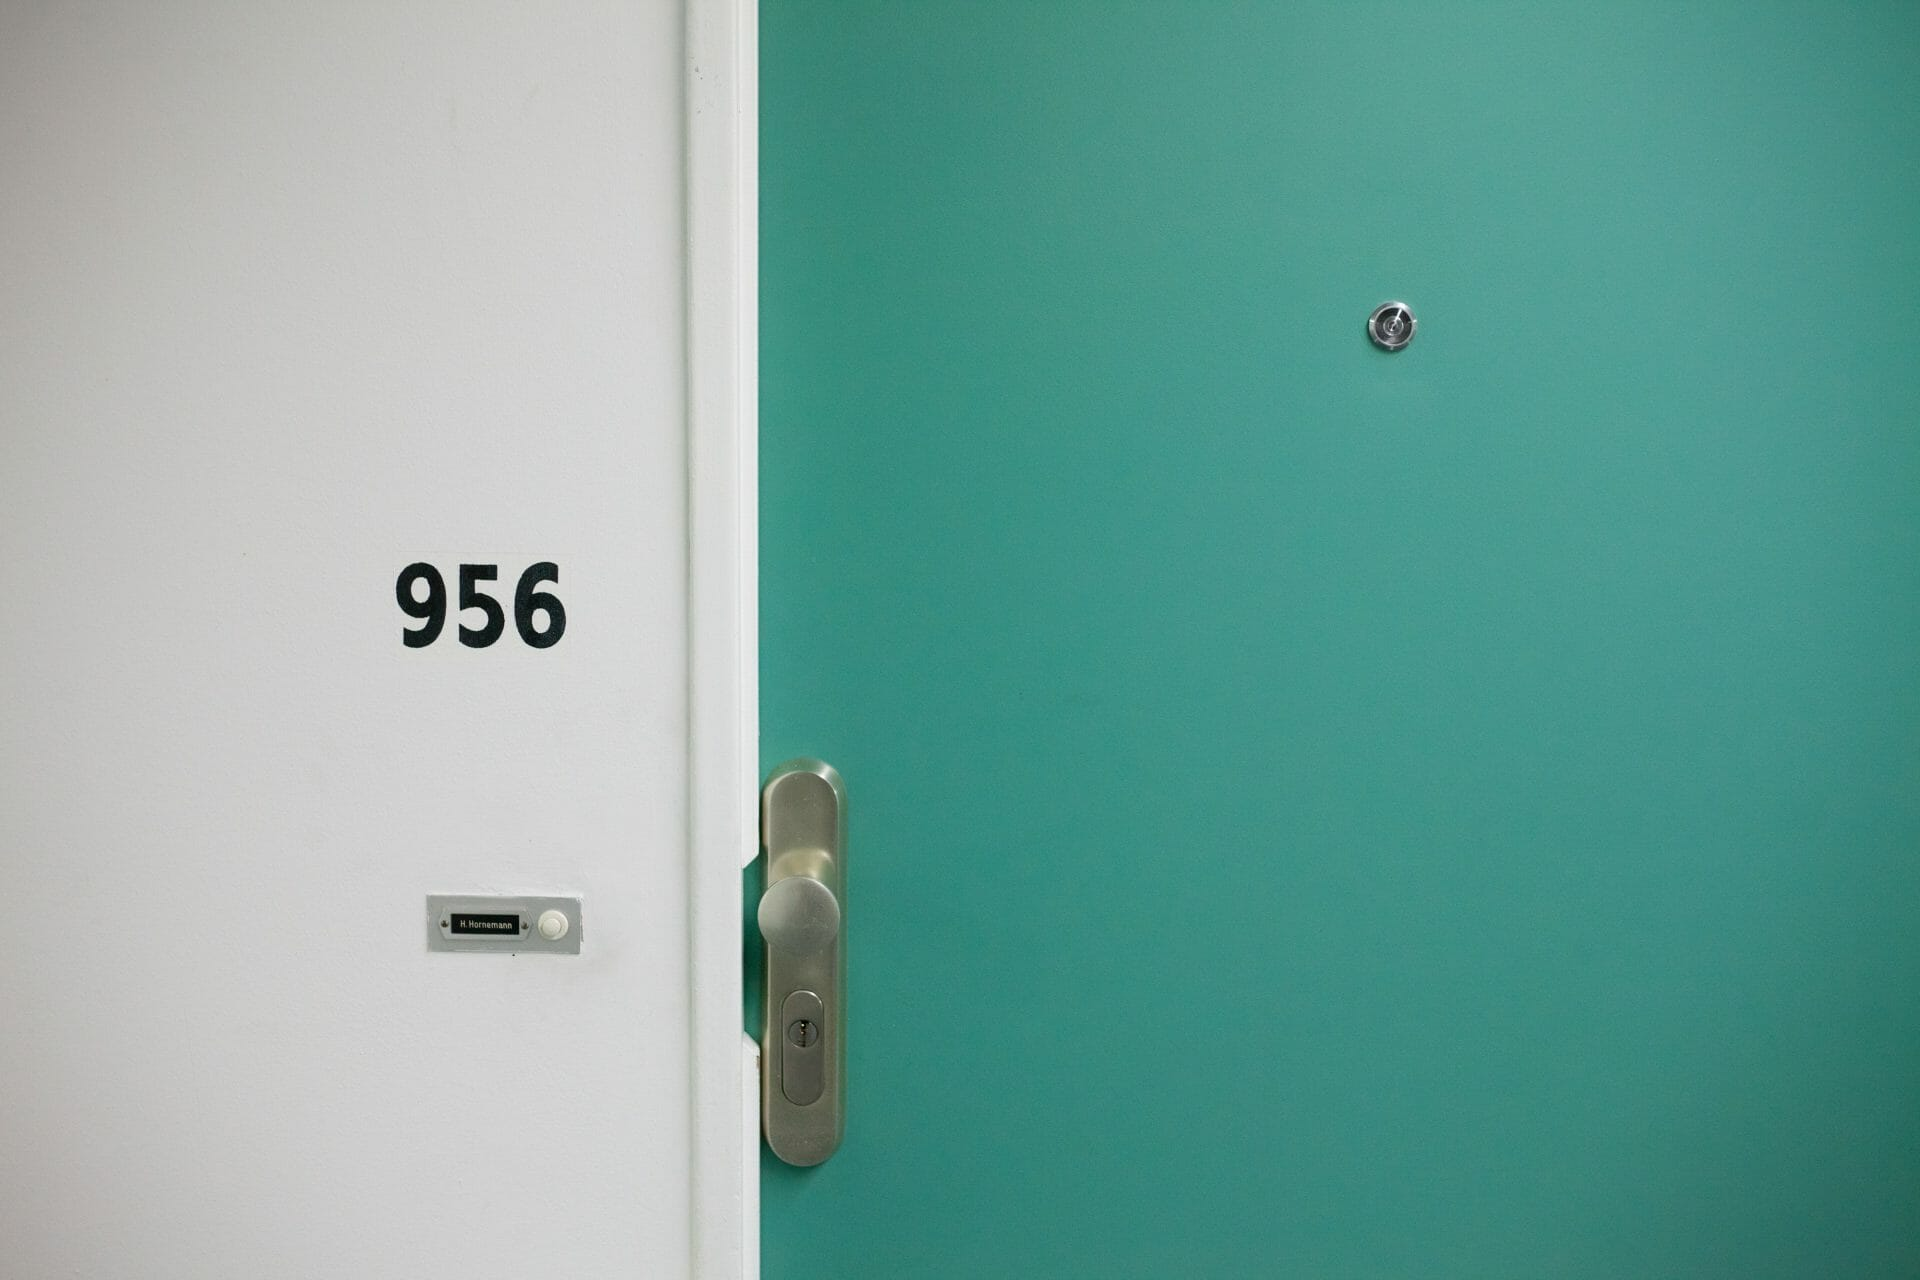 Picture of Apartment Door and number for Real Estate News for Investors Podcast Episode #710